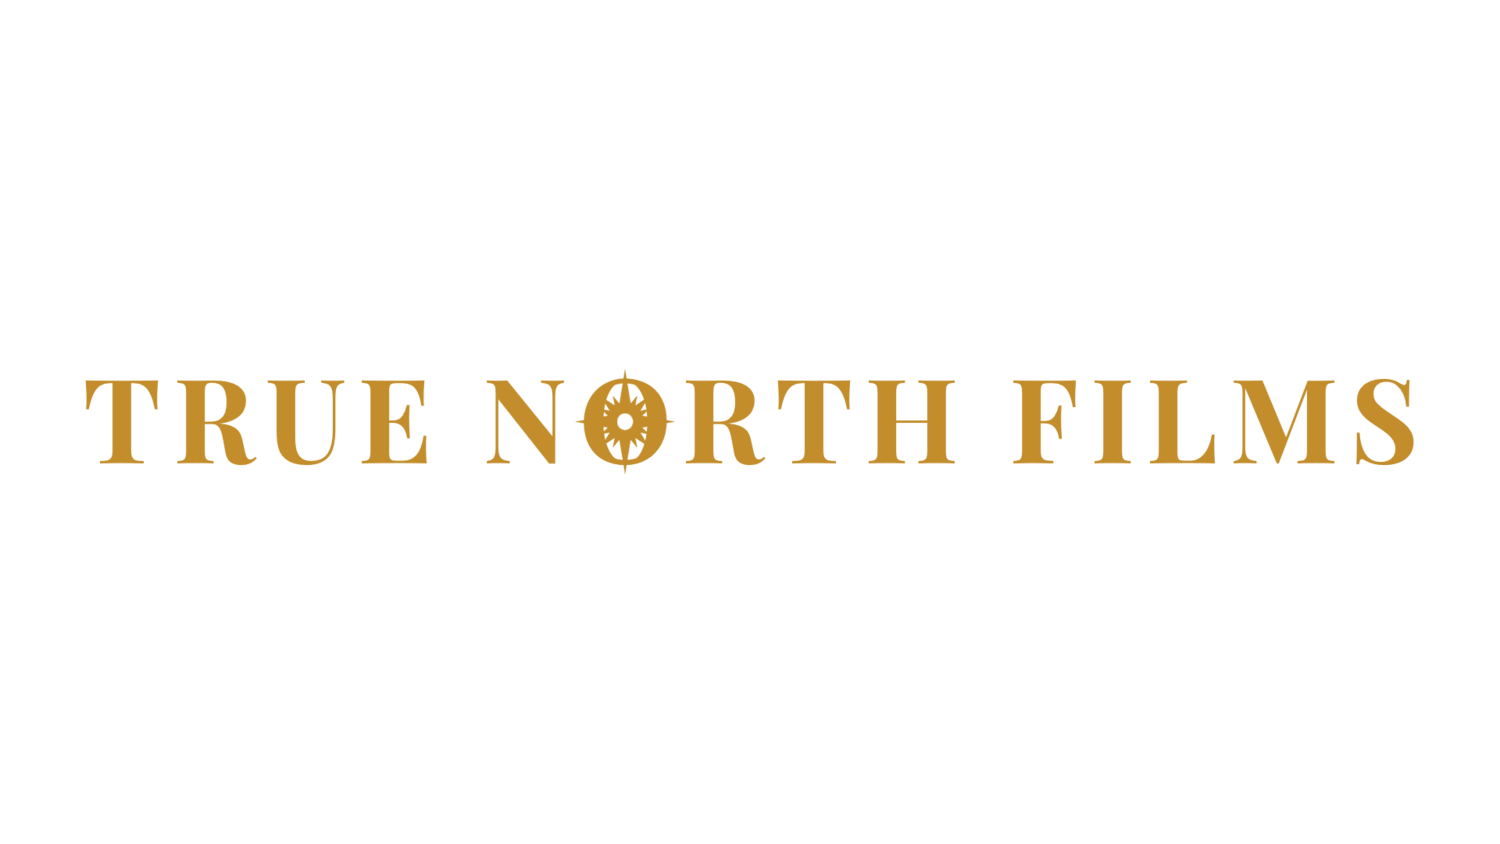 True North Films